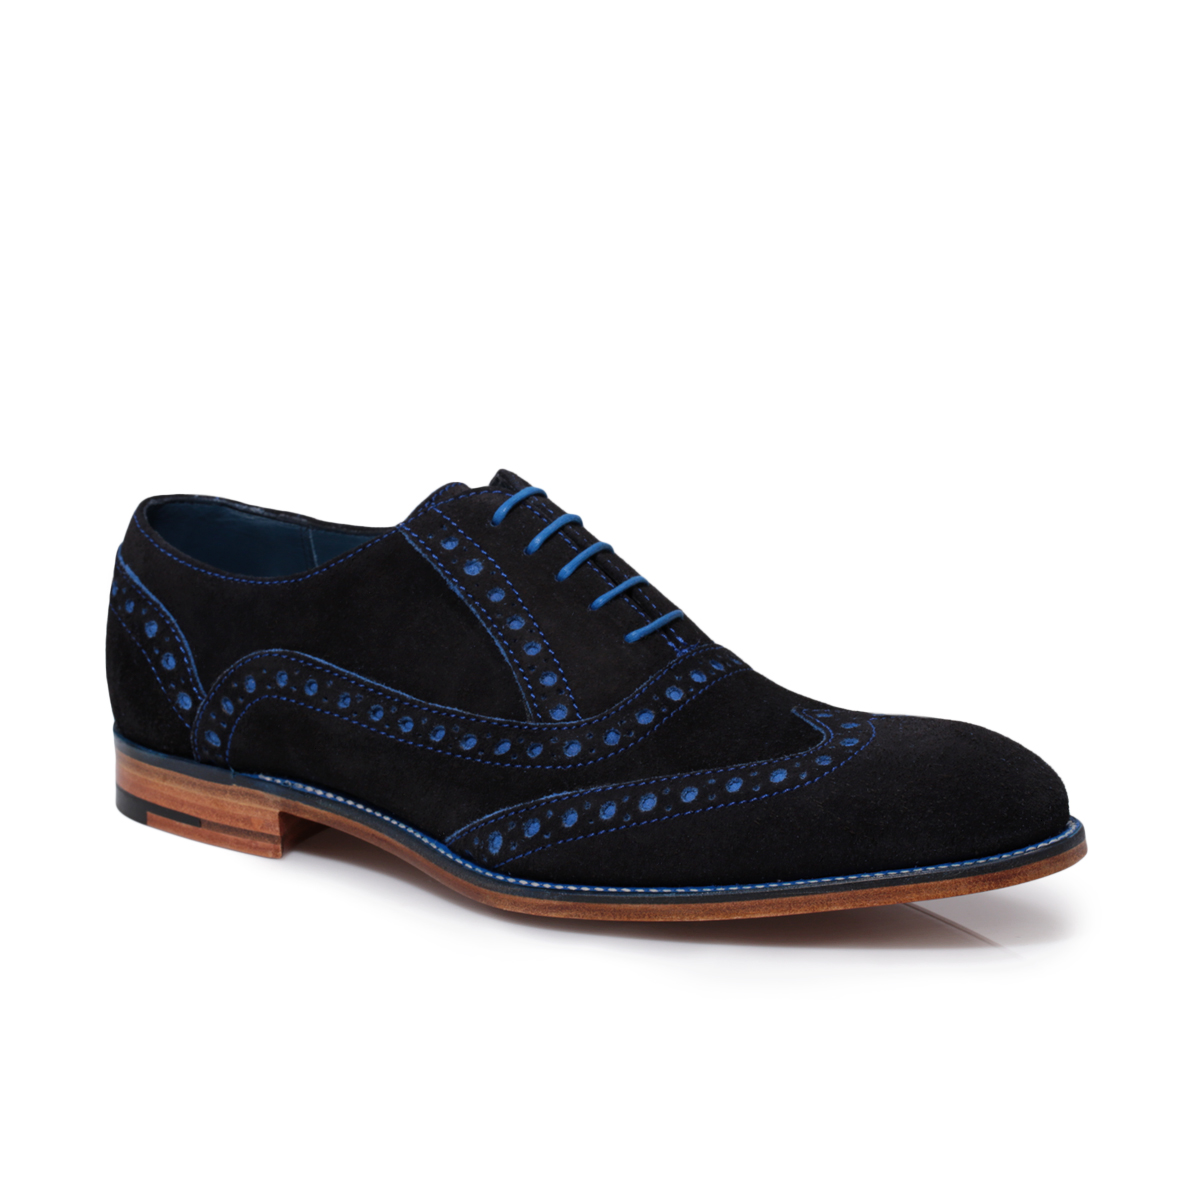 Find blue suede shoes at Macy's Macy's Presents: The Edit - A curated mix of fashion and inspiration Check It Out Free Shipping with $75 purchase + Free Store Pickup.